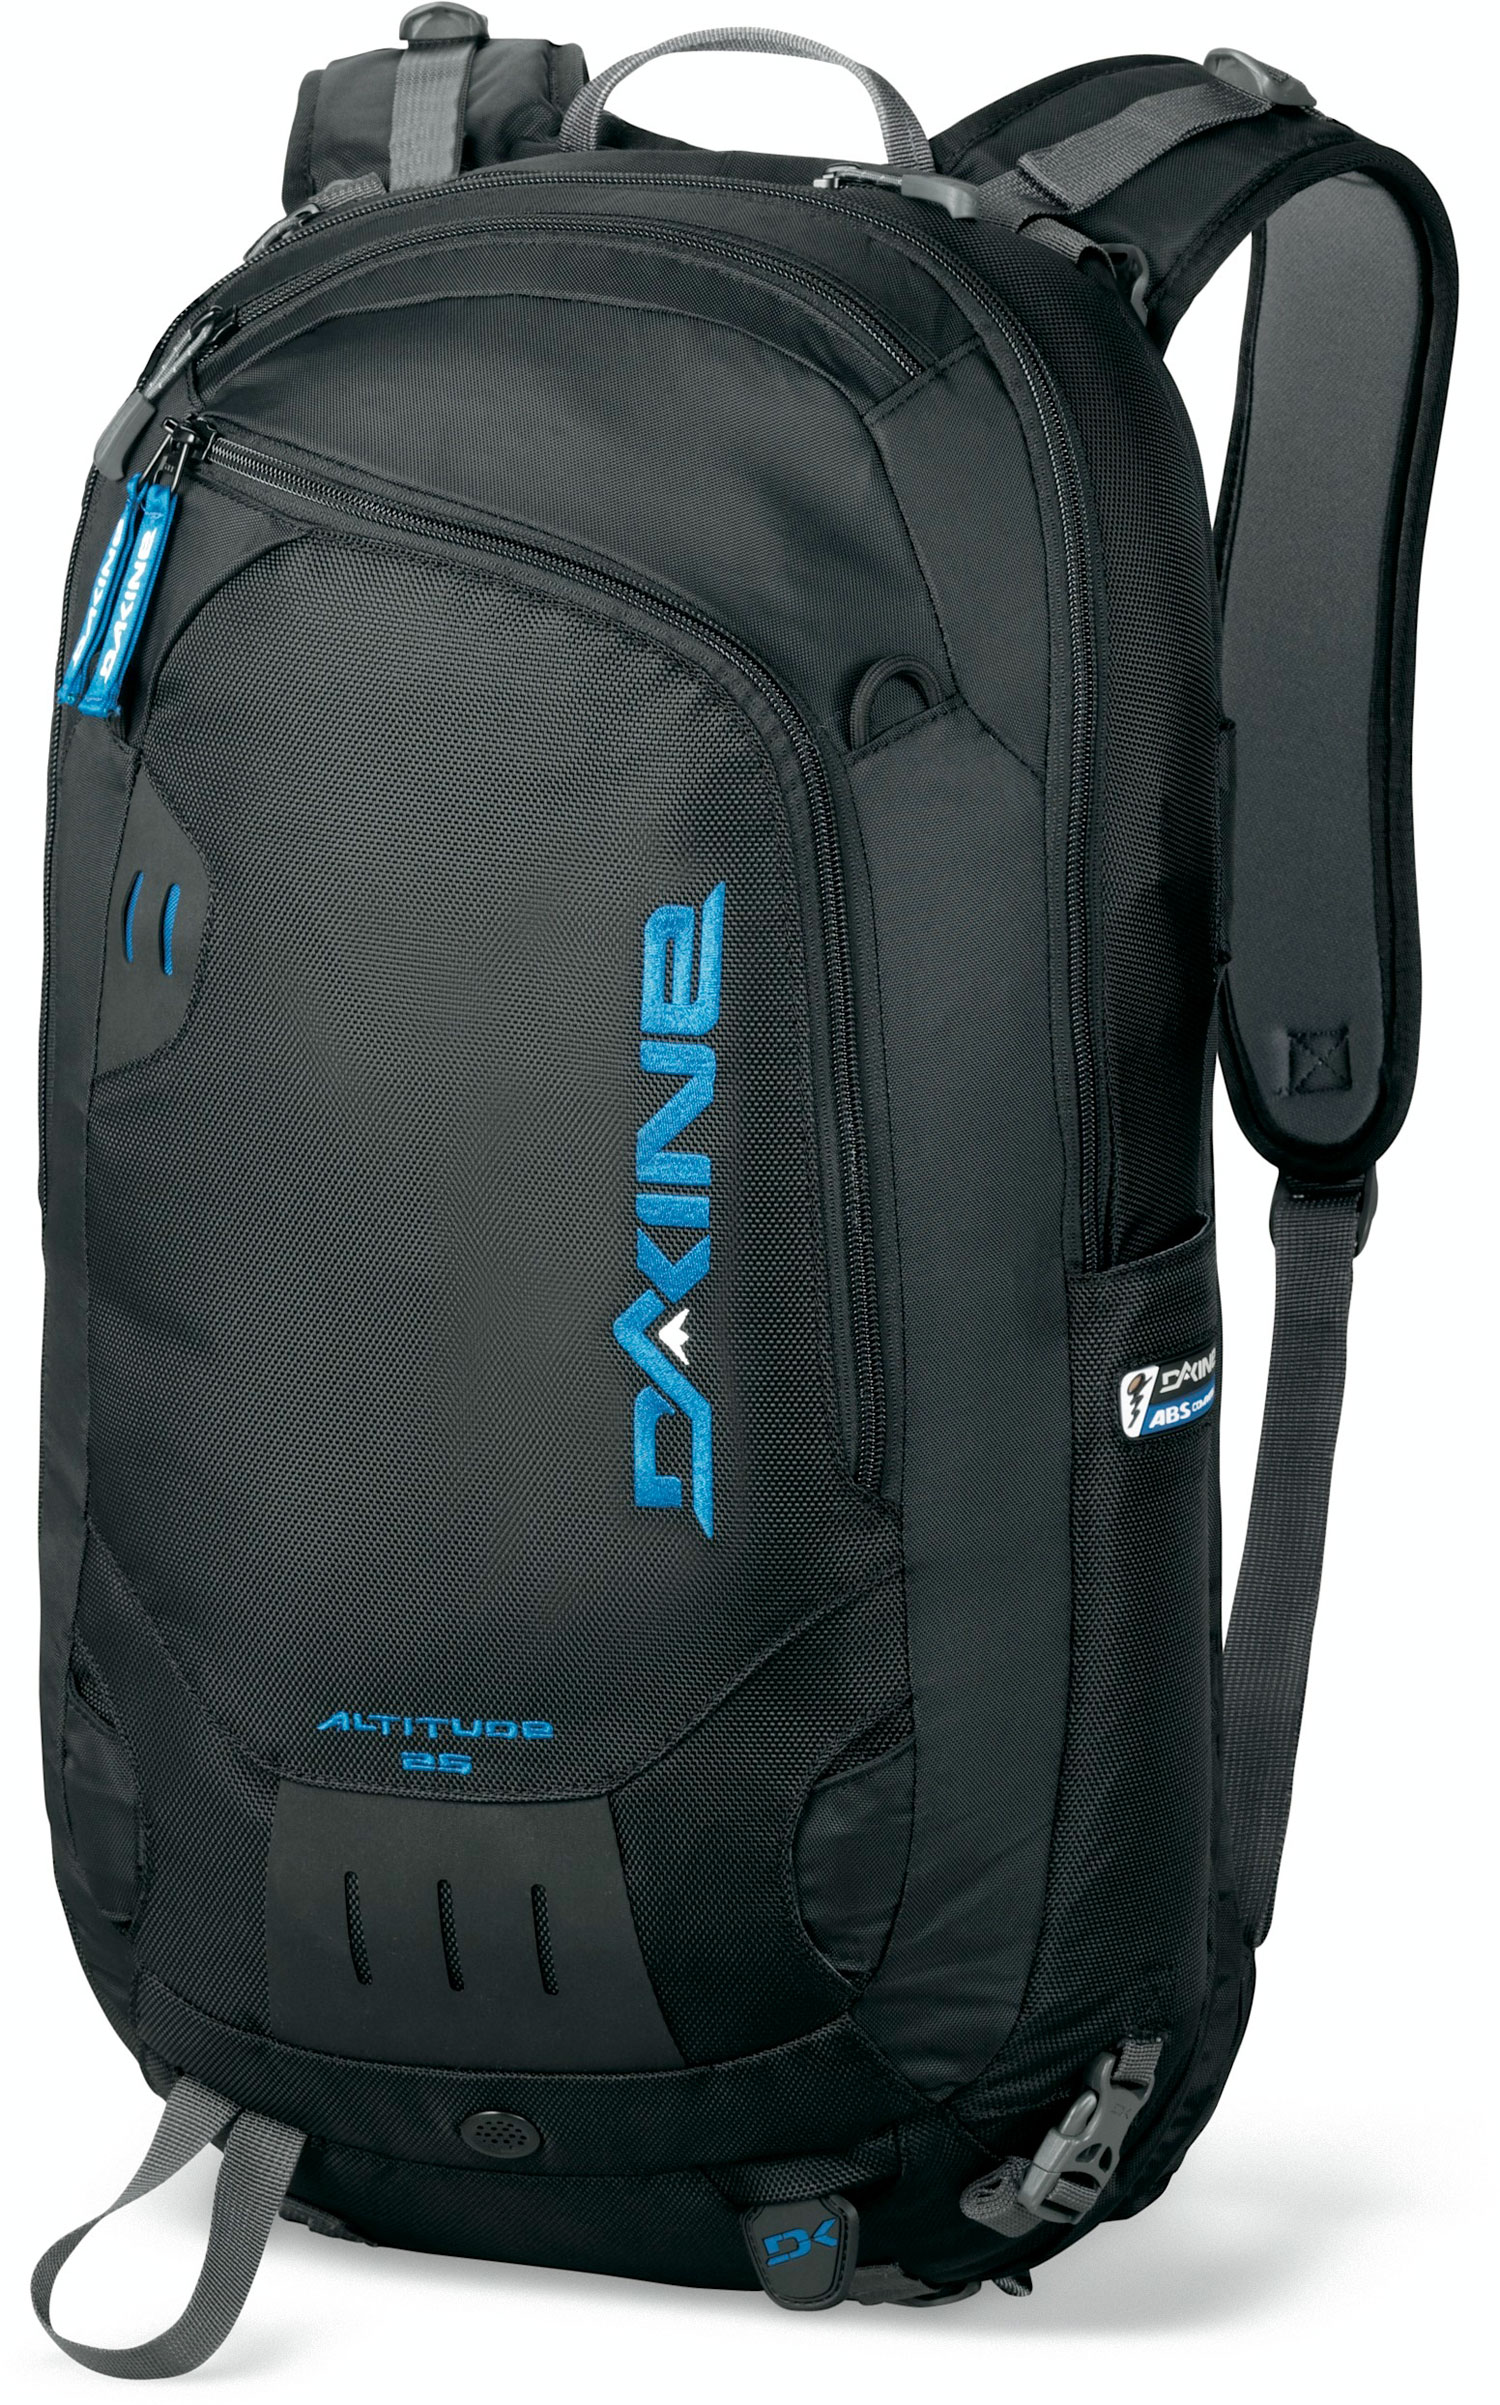 "Ski Key Features of the Dakine Altitude Abs 40L Backpack: 2460 cu.in. [ 40L ] 28 x 12 x 10"" [ 71 x 30 x 30cm ] 4 lbs. [ 1.8kg ] w/ Dakine base unit 8 lbs. [ 3.6kg ] w/ ABS Vario base unit 630D Nylon 1260D Ballistic Nylon Compatible with ABS Avalanche Vario Base Unit [ sold separately ] Vertical snowboard carry Retractable cable ski carry Deployable helmet carry Insulated hydro sleeve[ Dakine base unit only ] Snow tool/shovel pocket Ice axe carry Load compression straps Pre-curved internal framesheet Padded waist belt Rescue Whistle - $131.95"